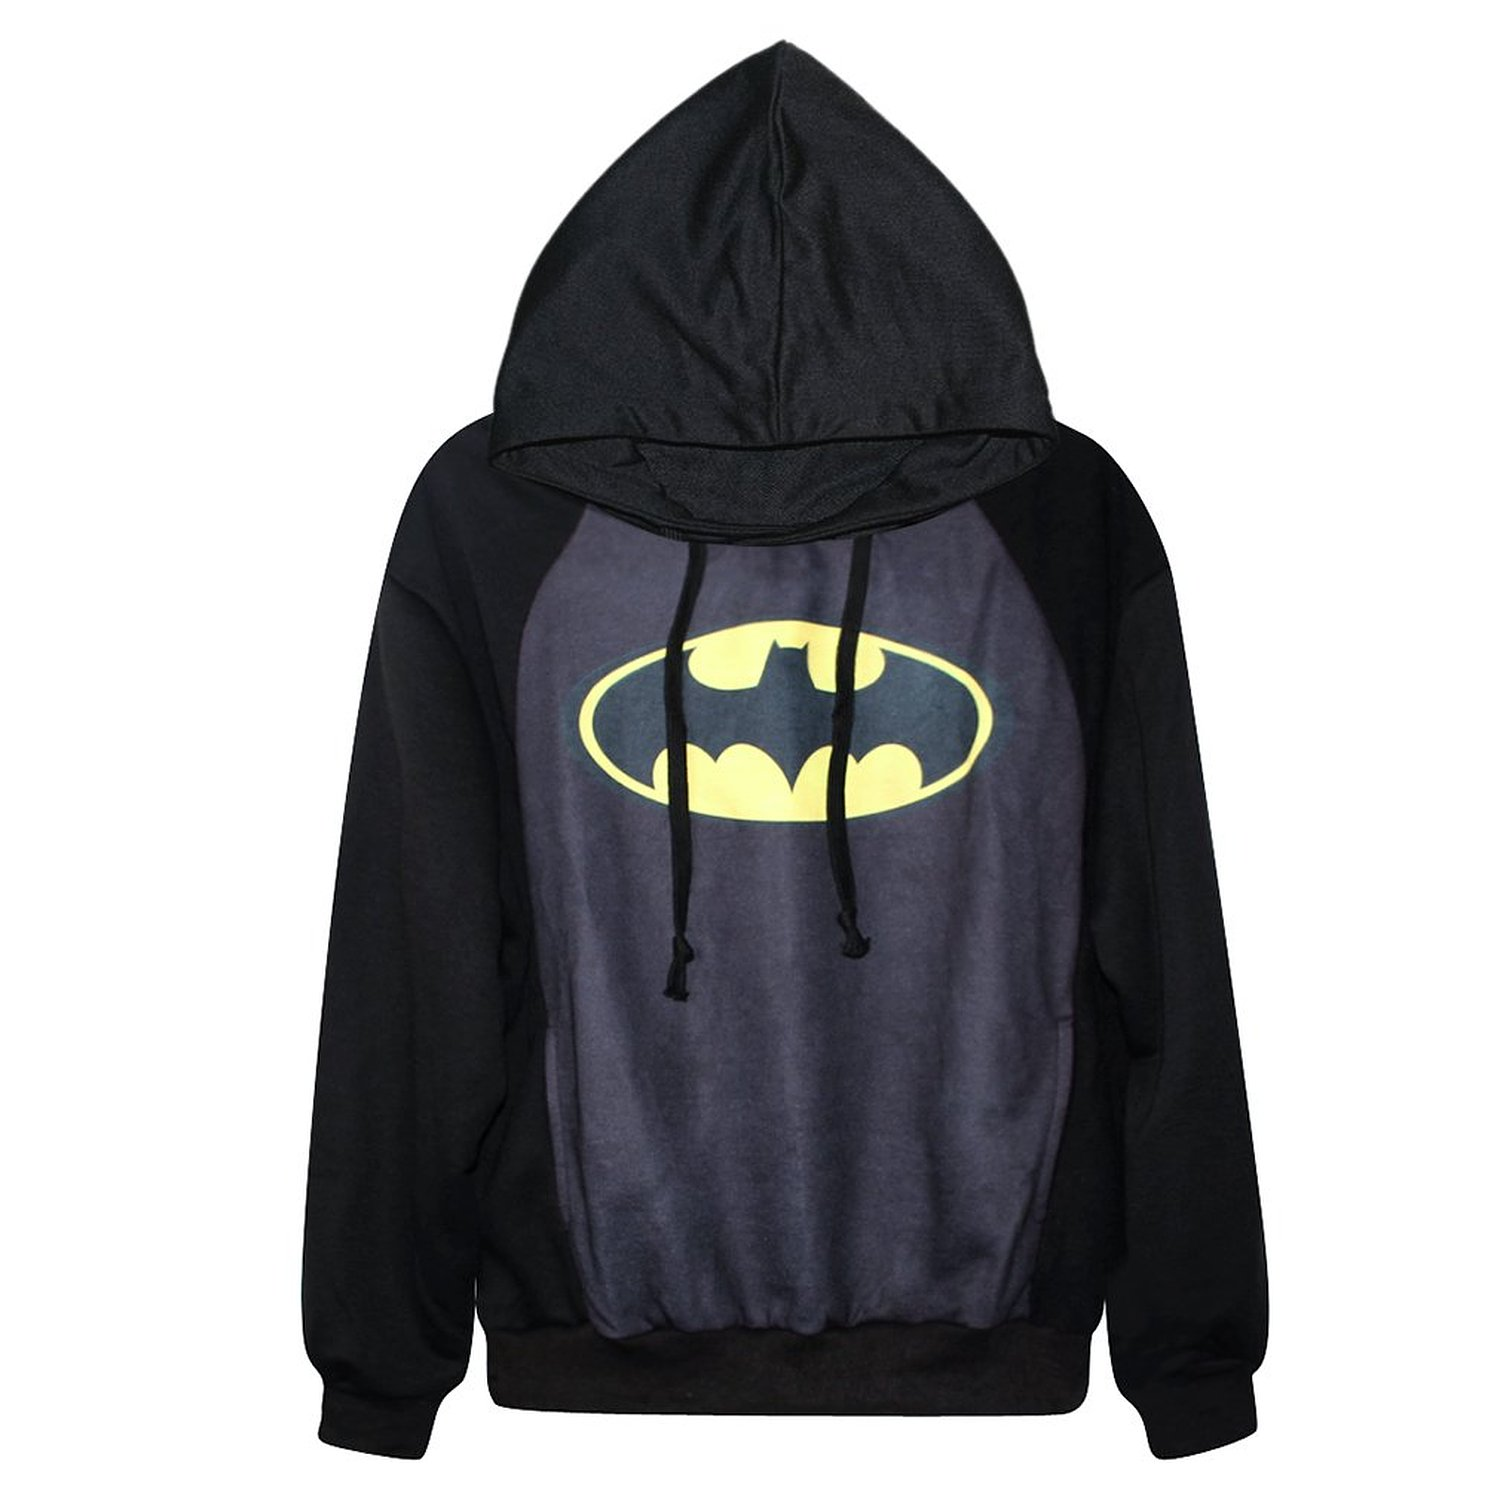 Fashion digital print long sleeve jacket lady coat (batman) at amazon women's clothing store: